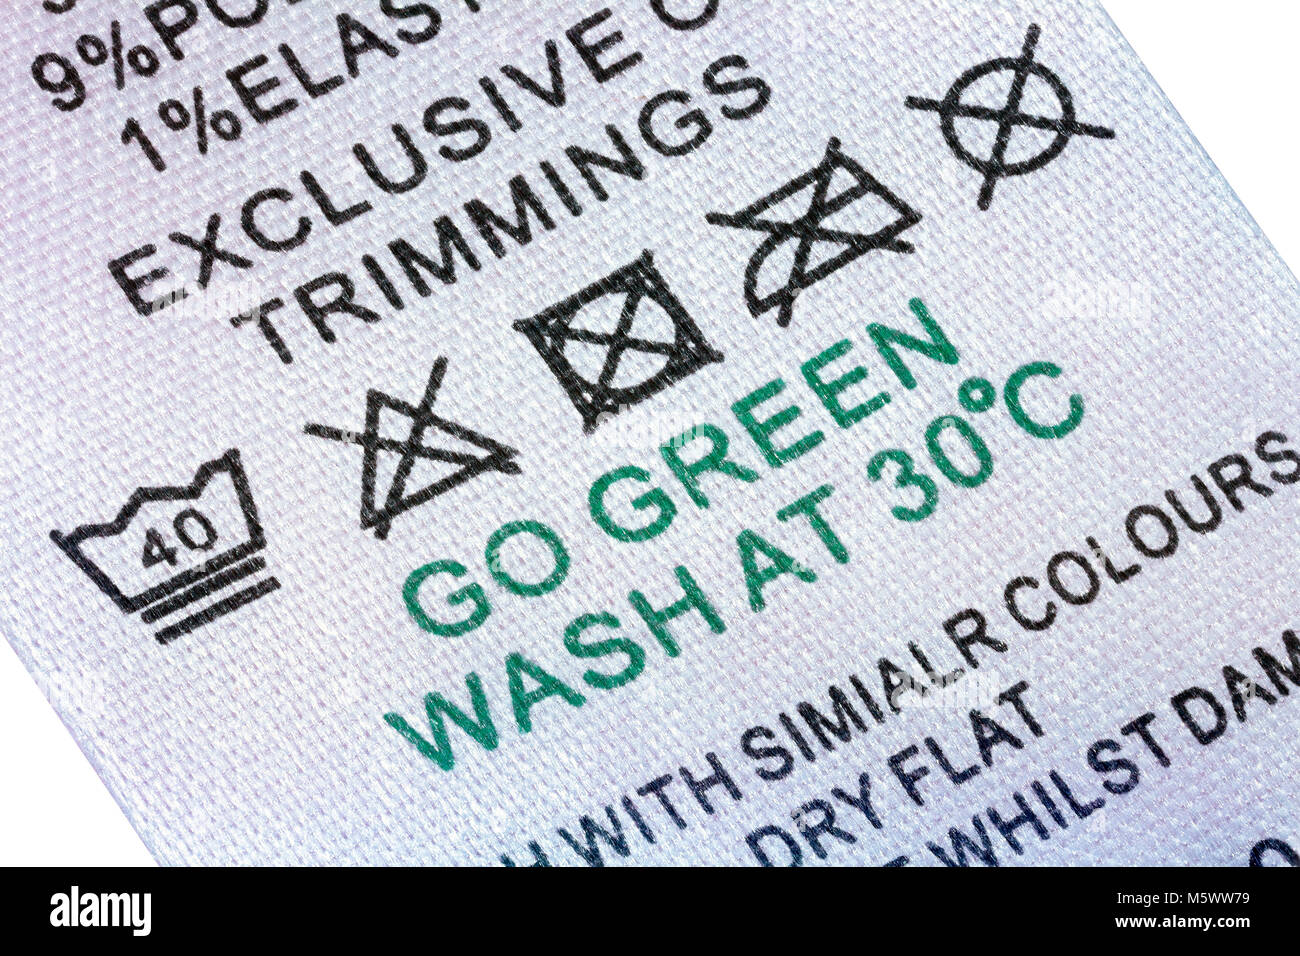 Laundry Clothes Washing Care Label 40 Wash Gentle Cycle Do Not